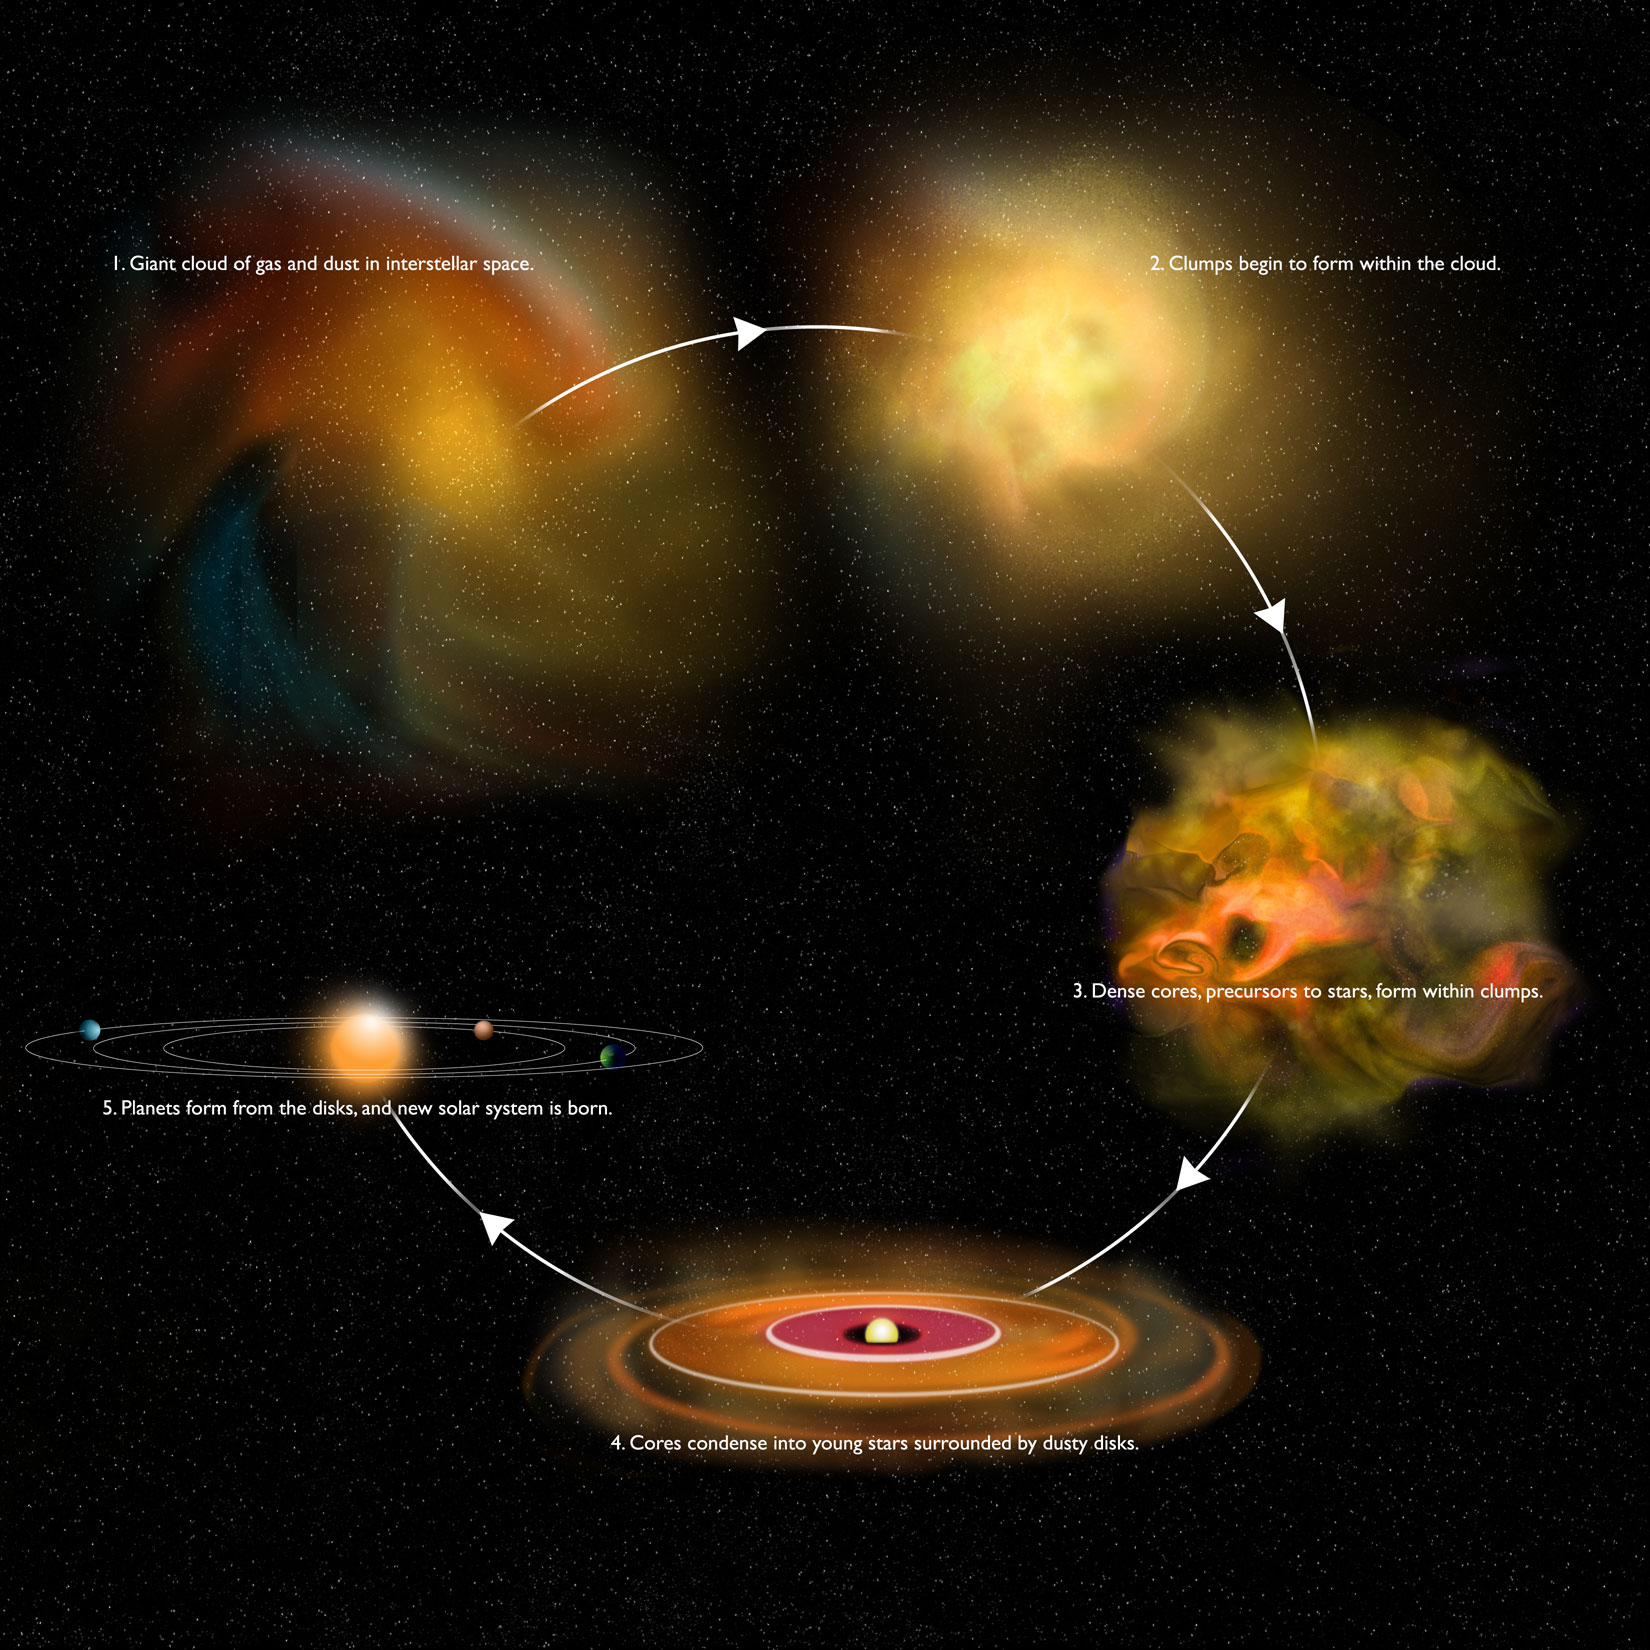 The Birth of A Star Captured Like Never Before